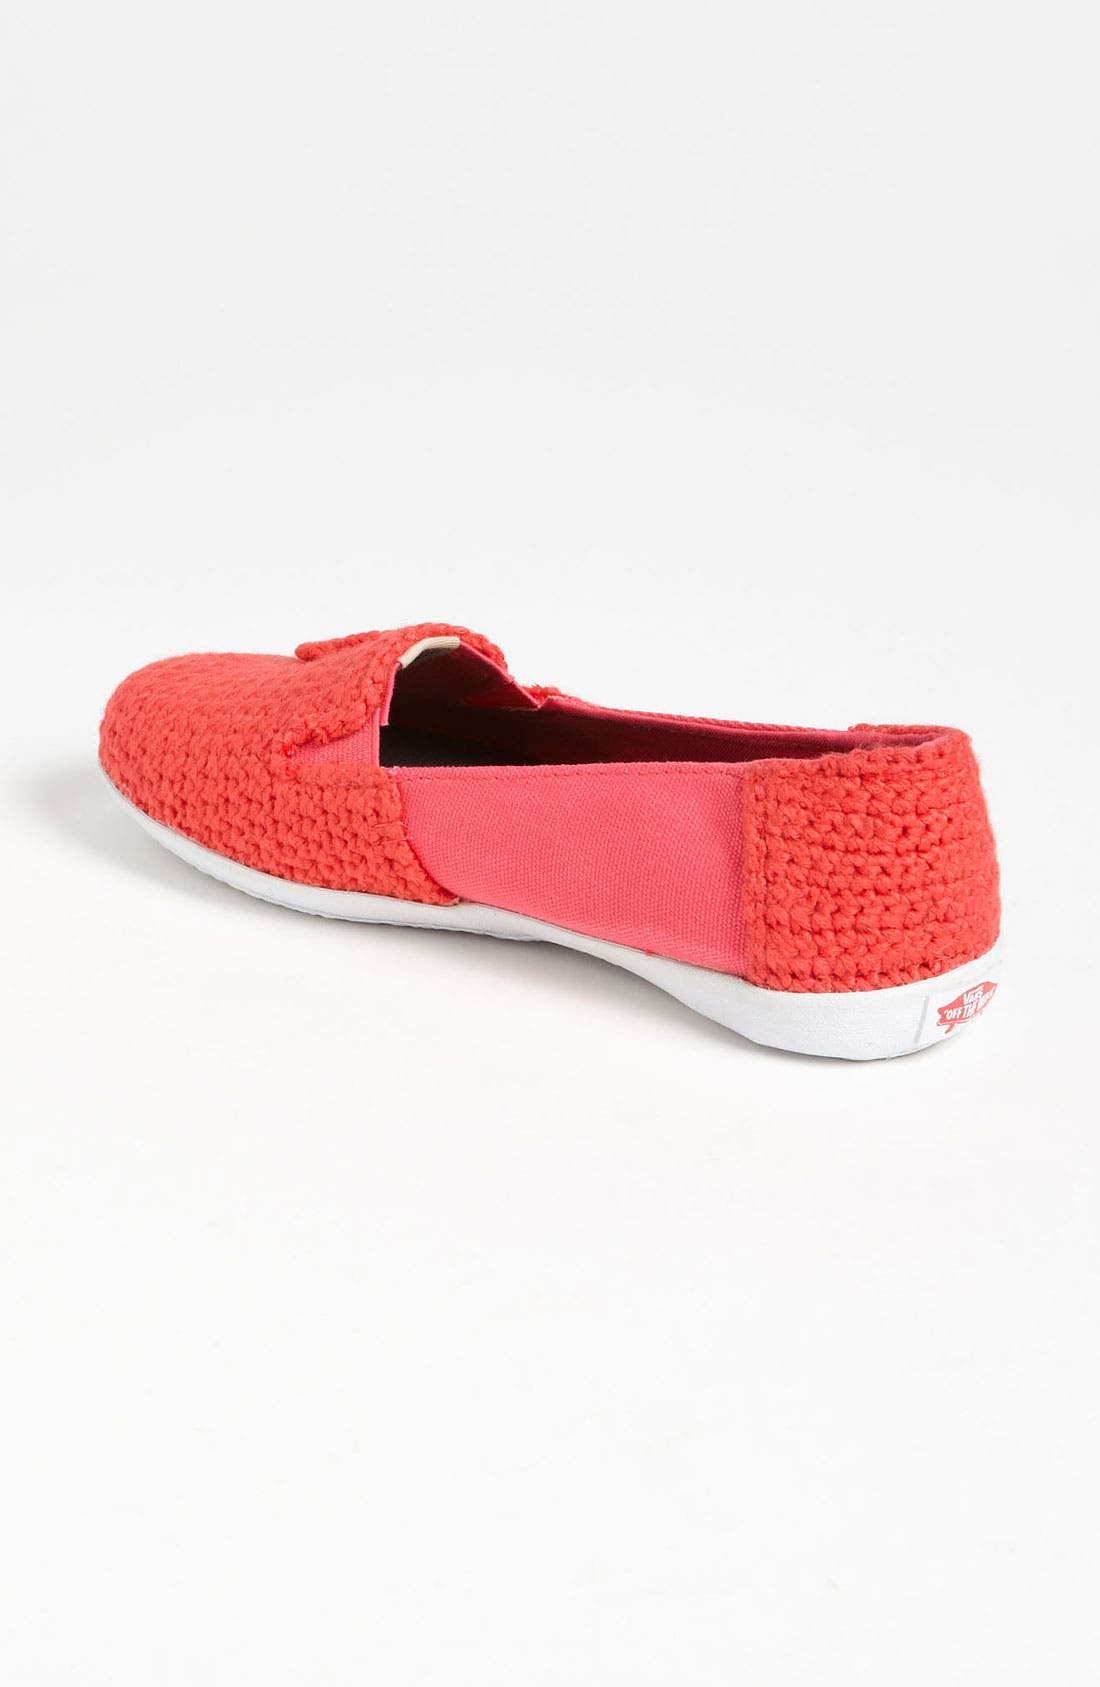 Alternate Image 2  - Vans + Krochet Kids 'Bixie' Crochet Slip-On